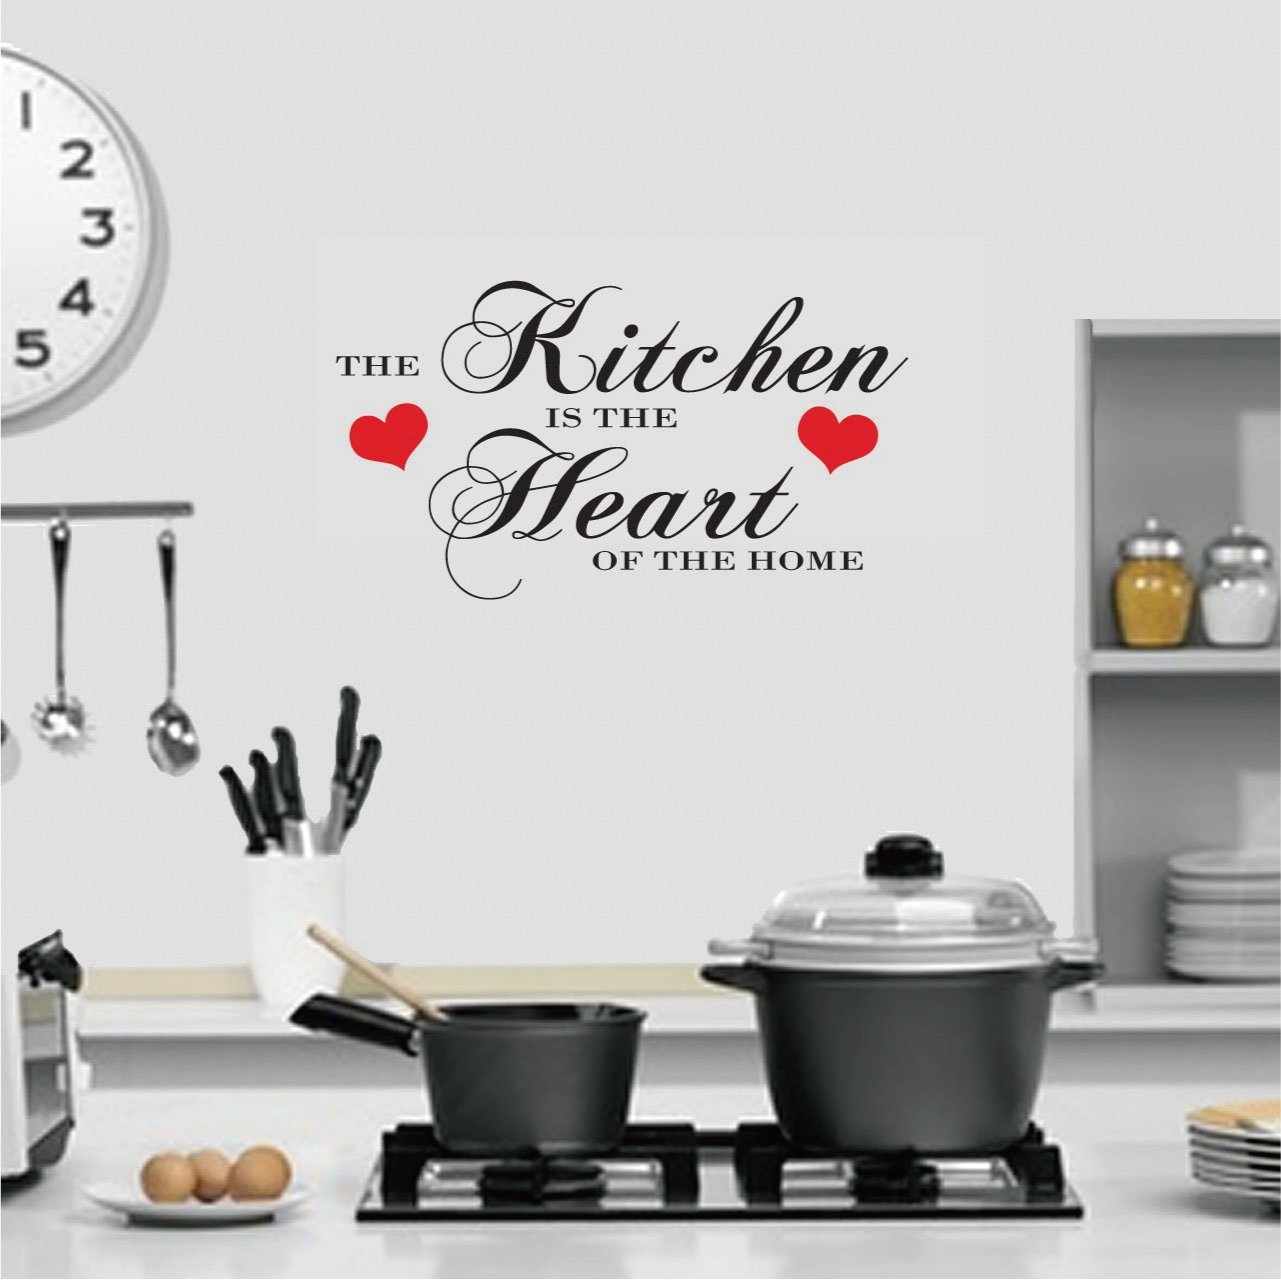 (LARGE) THE KITCHEN IS THE HEART OF THE HOME QUOTE WALL ART DECAL STICKER  14 COLOURS AVAILABLE: Amazon.co.uk: Kitchen U0026 Home